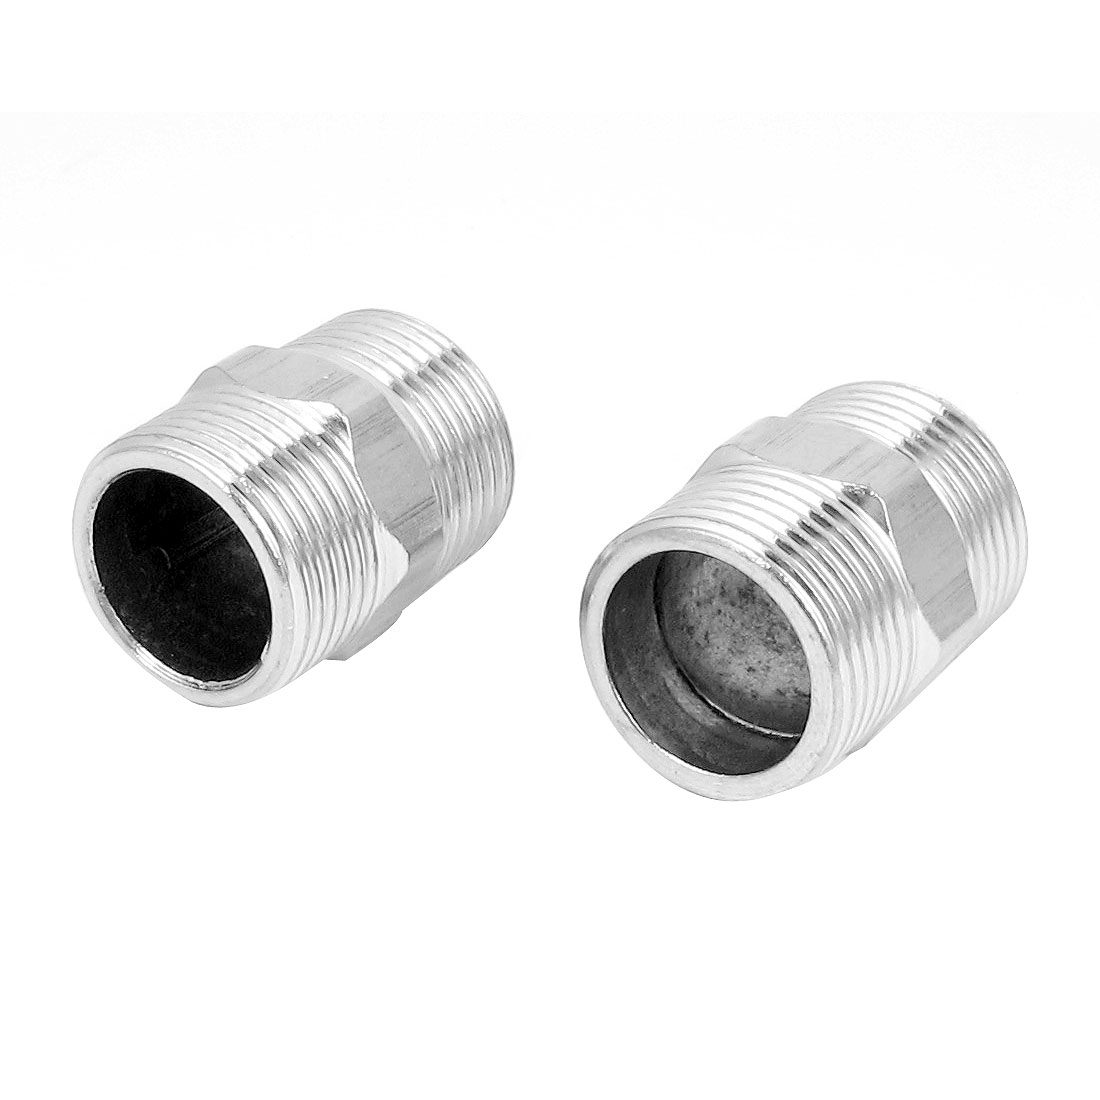 1BSP Male to Male Threaded 304 Stainless Steel Hex Nipple Pipe Fitting Connector 2pcs